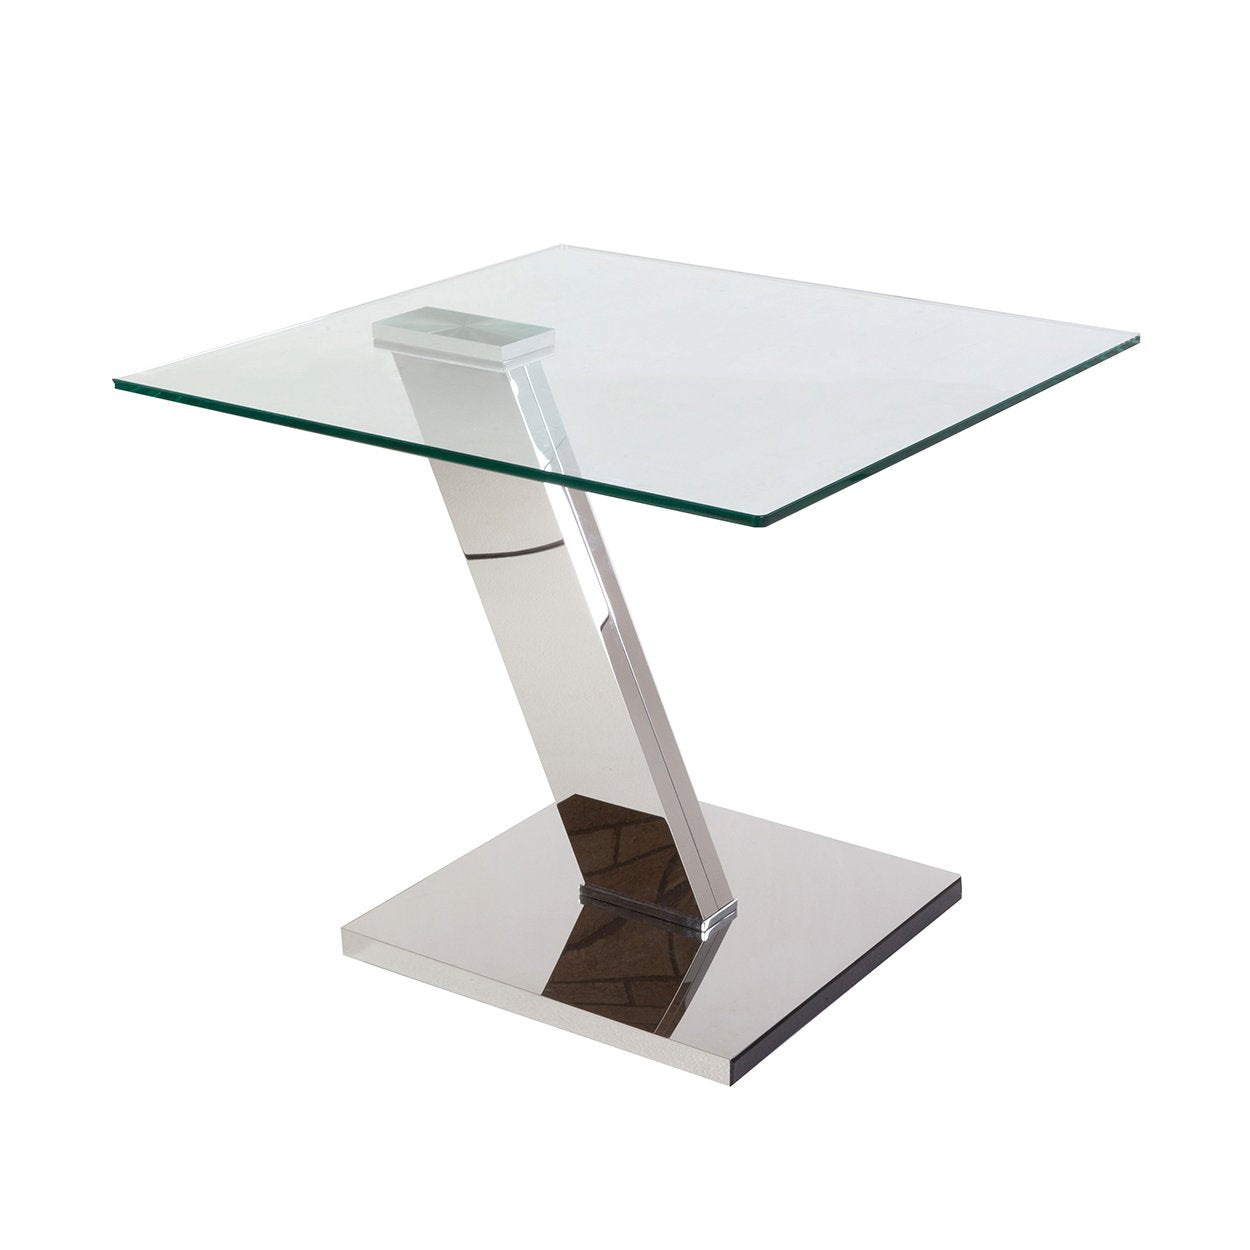 [FQT7241S] Esaro Side Table sale